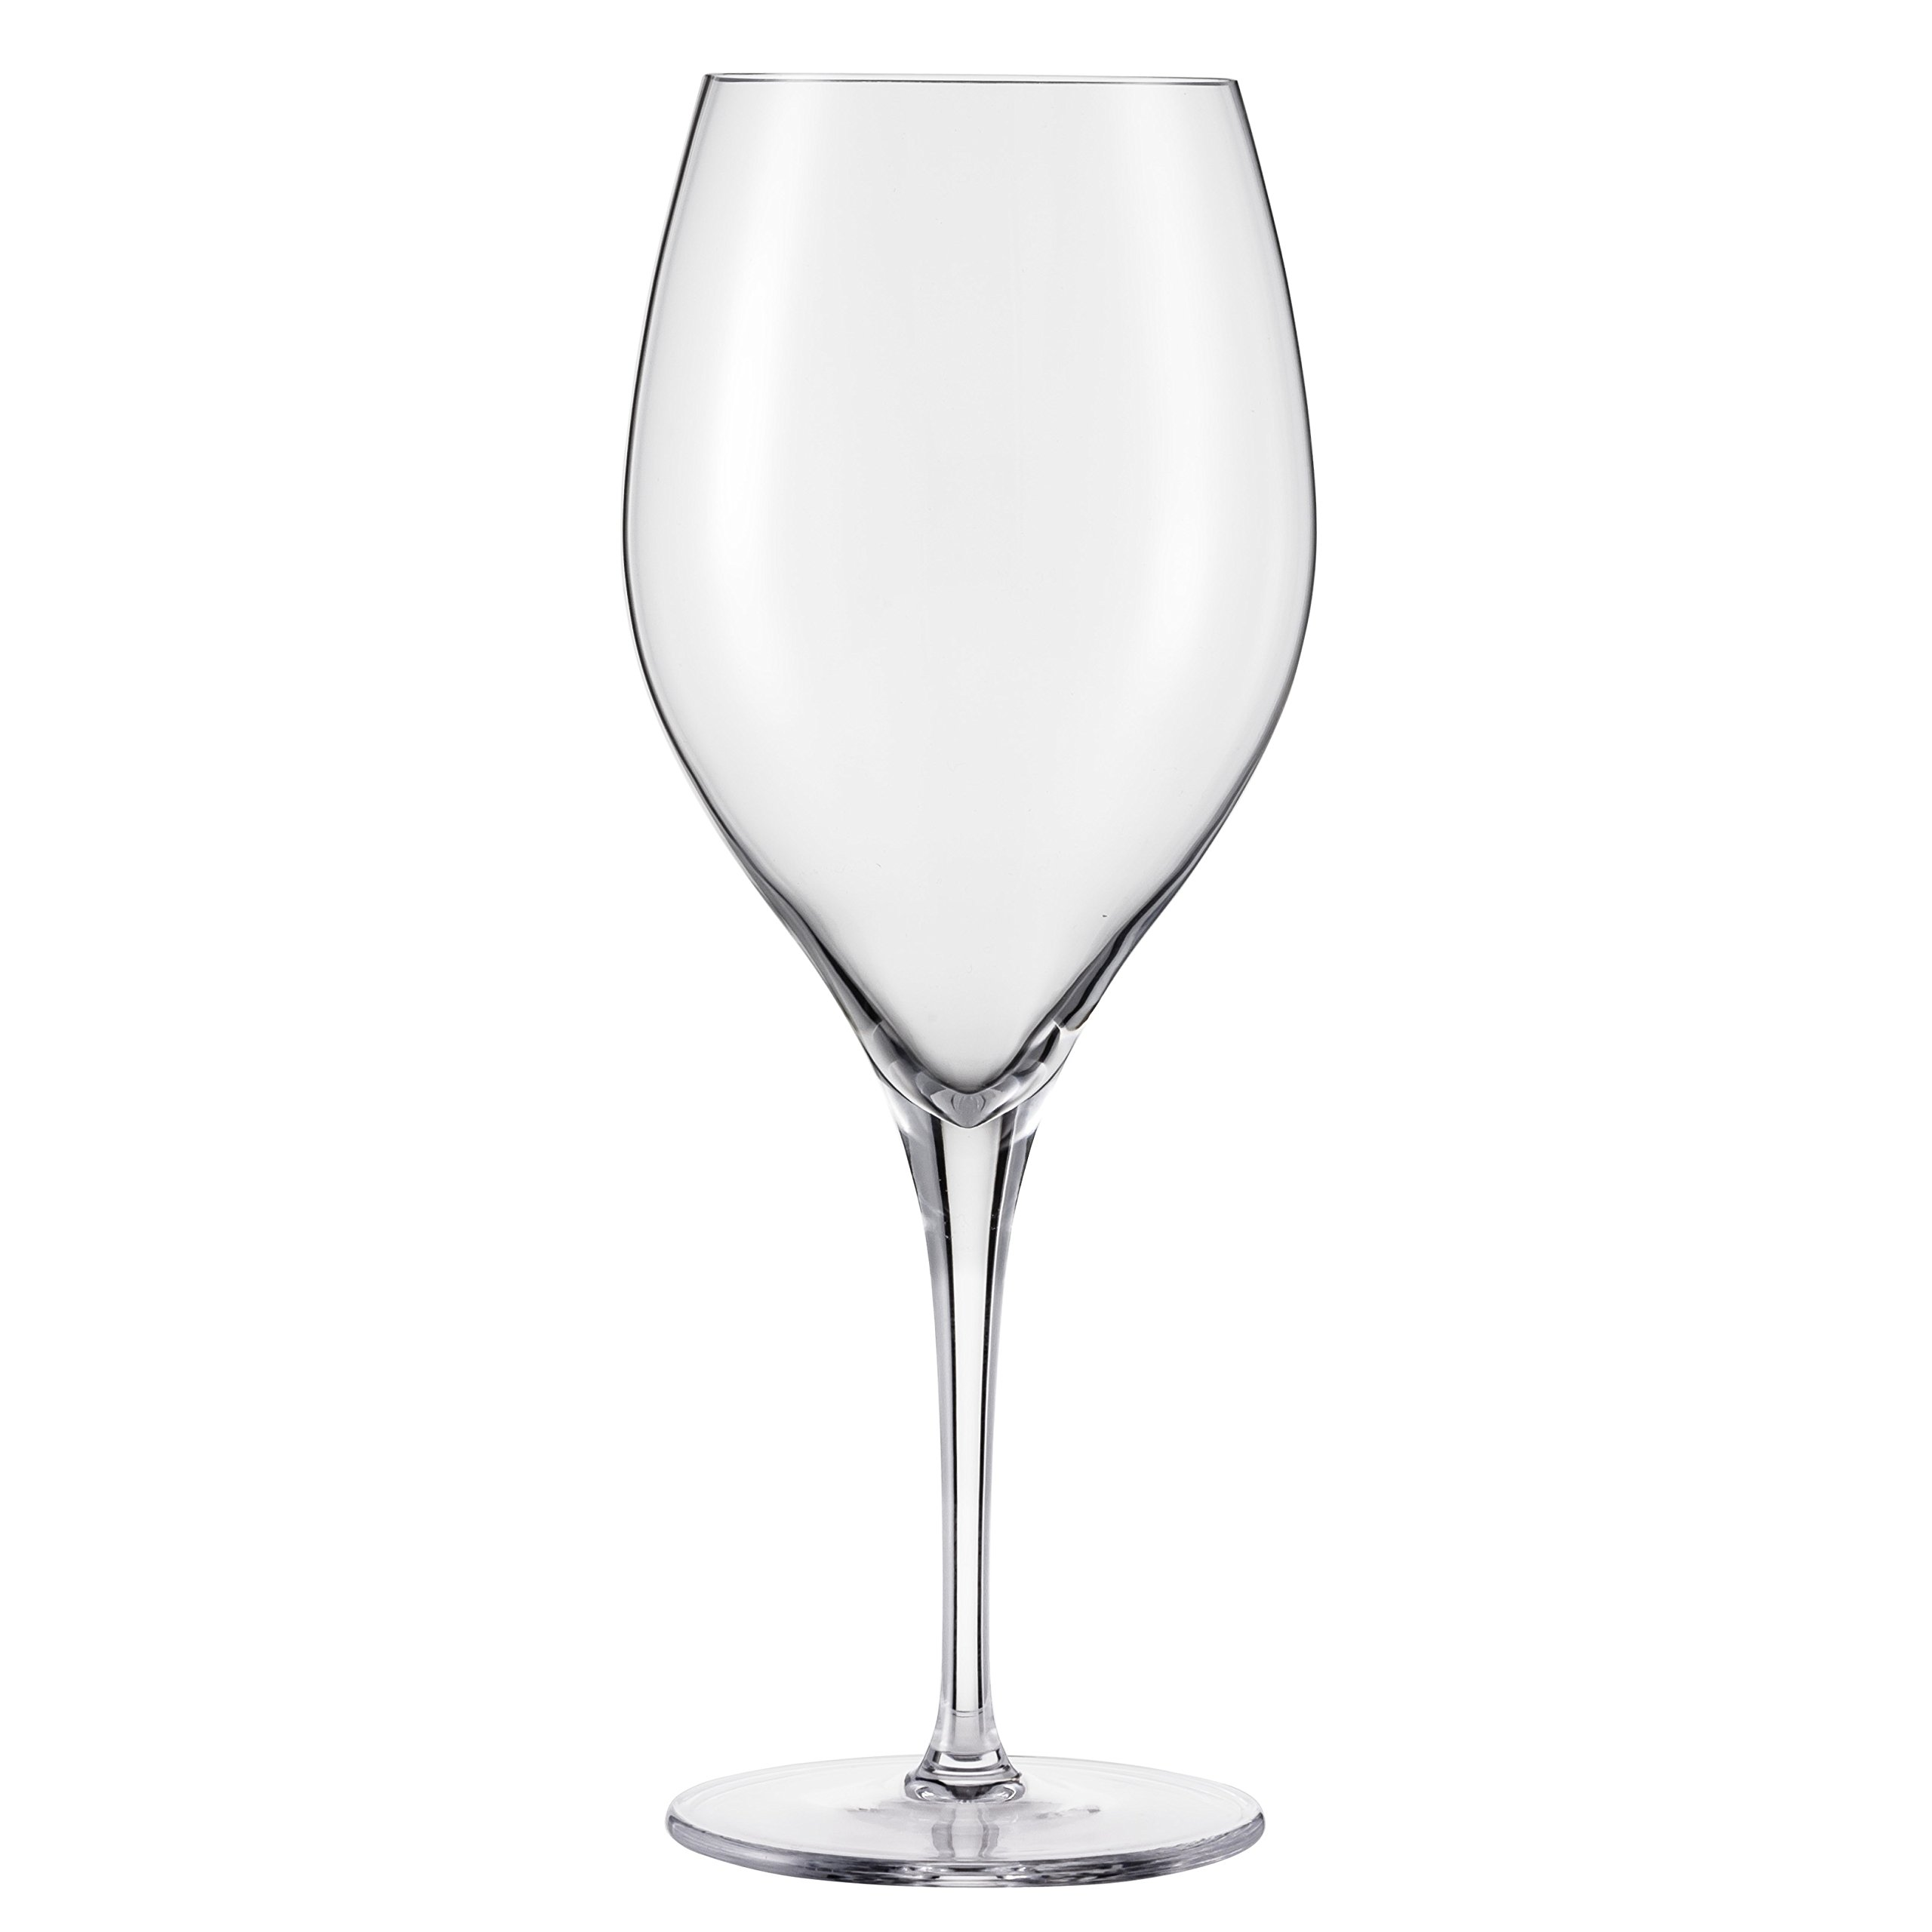 Schott Zwiesel Tritan Crystal Glass Grace Stemware Collection All Purpose, Red or White Wine Glass, 16.2-Ounce, Set of 8